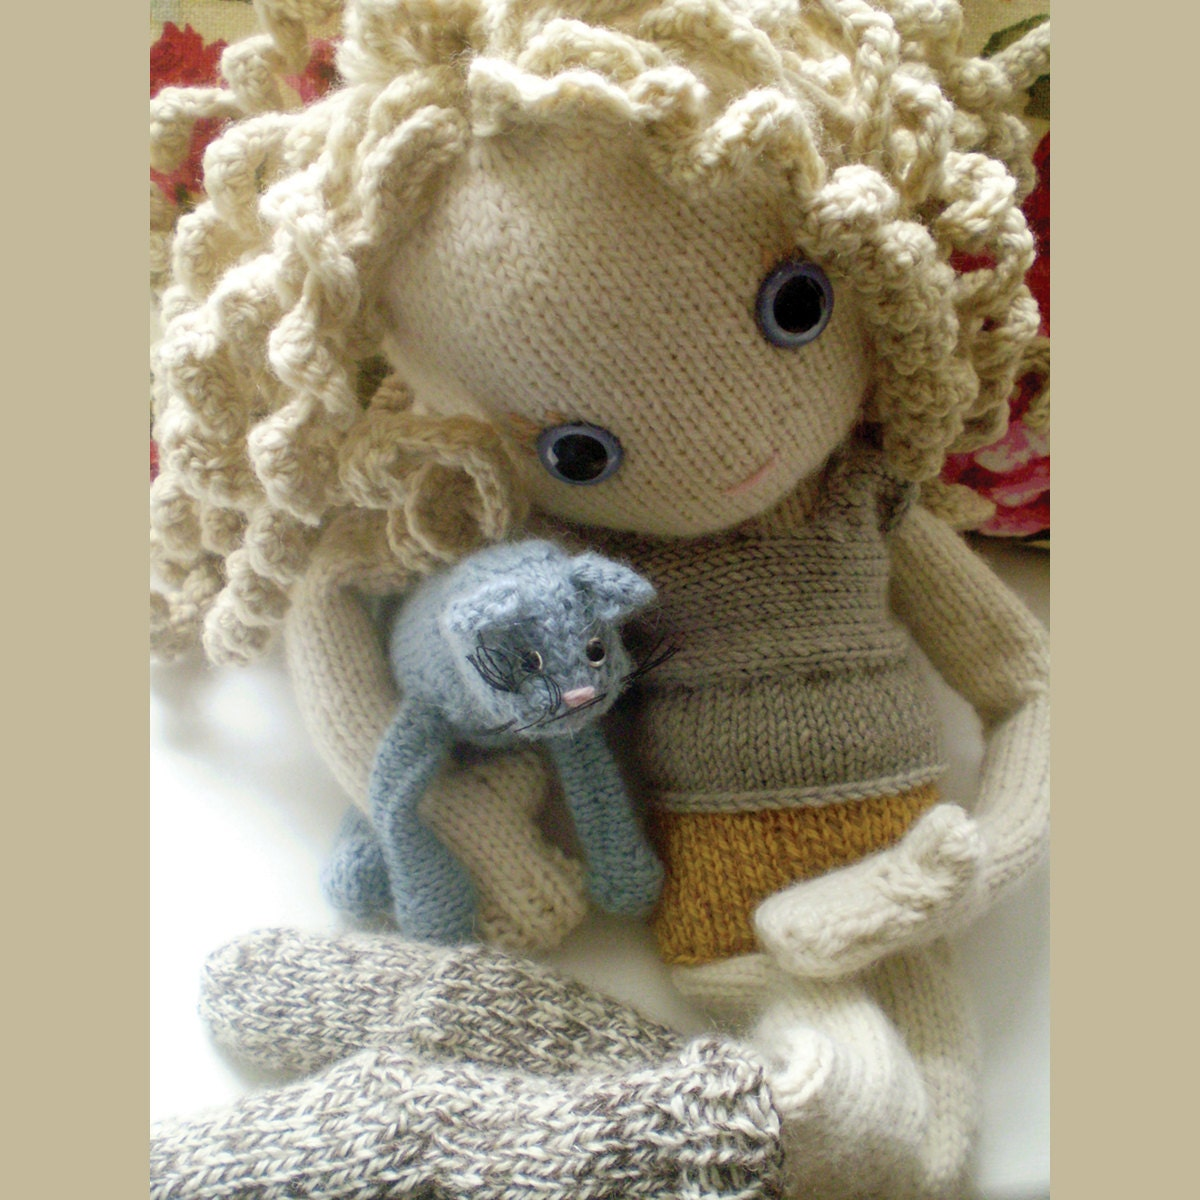 Knitted Doll Patterns : Pixie Moon knitted doll pattern by knittedbabe on Etsy